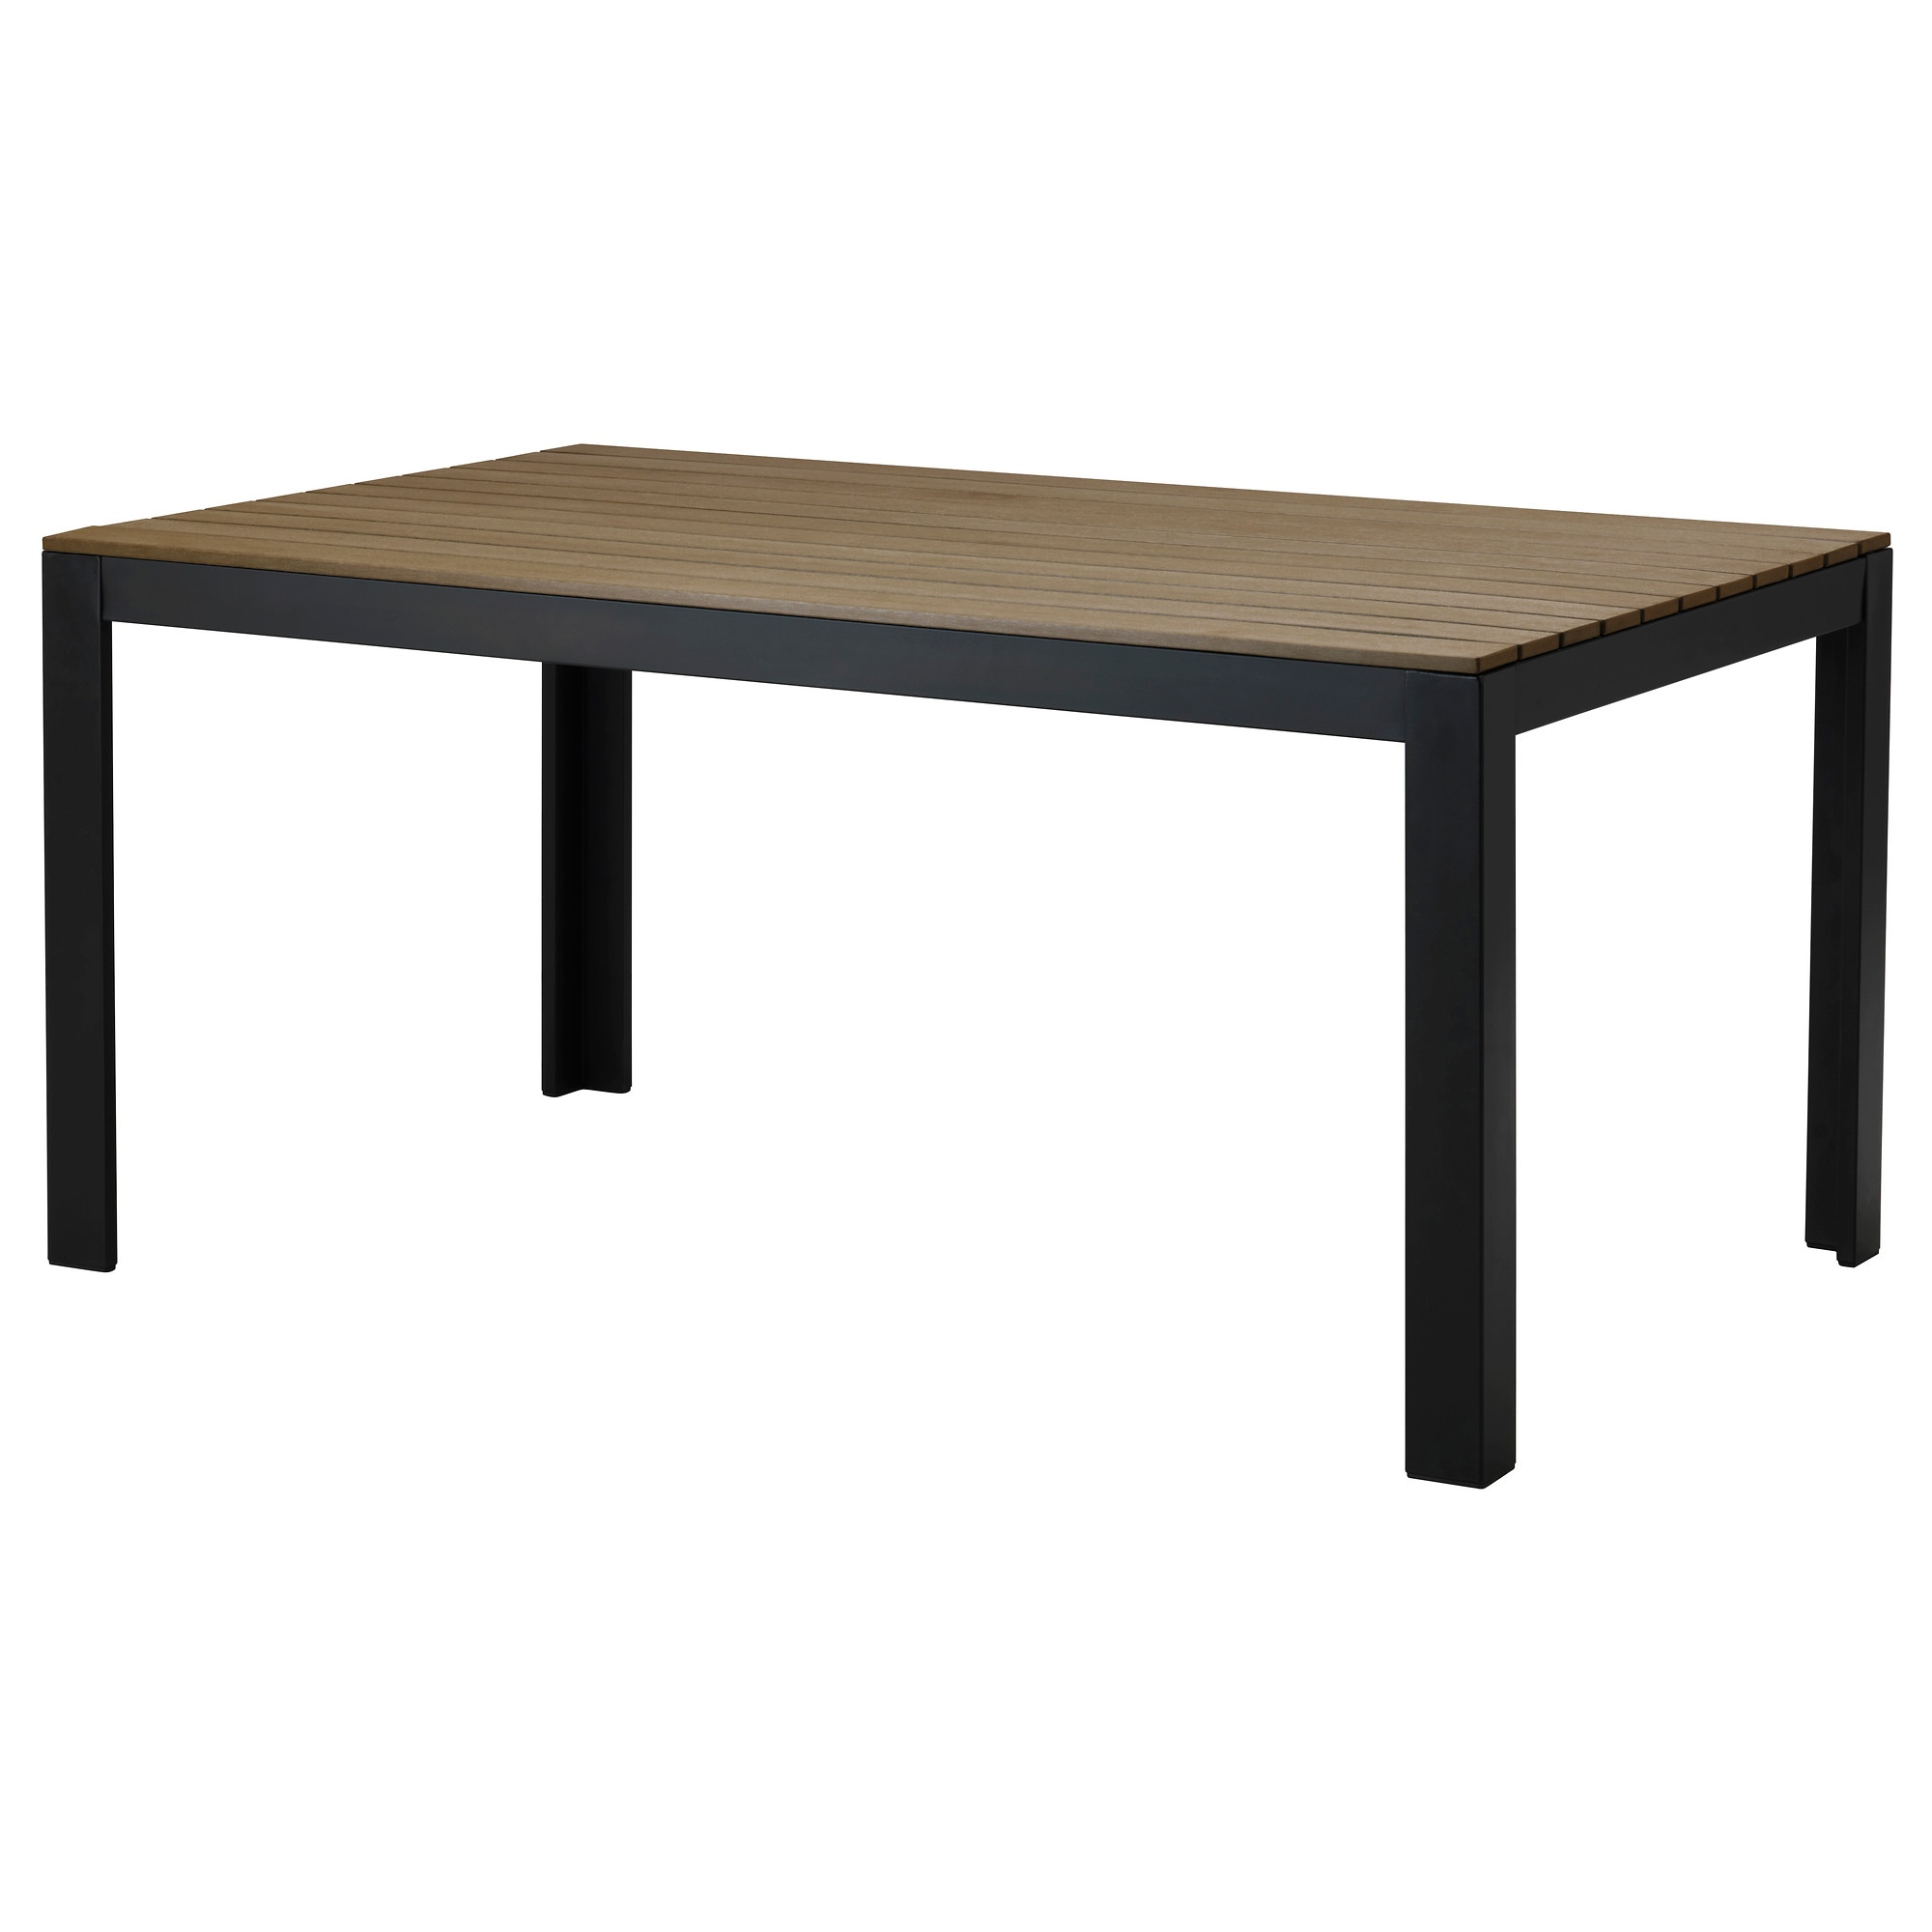 Great Teak Patio Table Teak Patio Furniture Home Son View Furniture  #604D36 2000 2000 Ikea Tavoli X Bambini